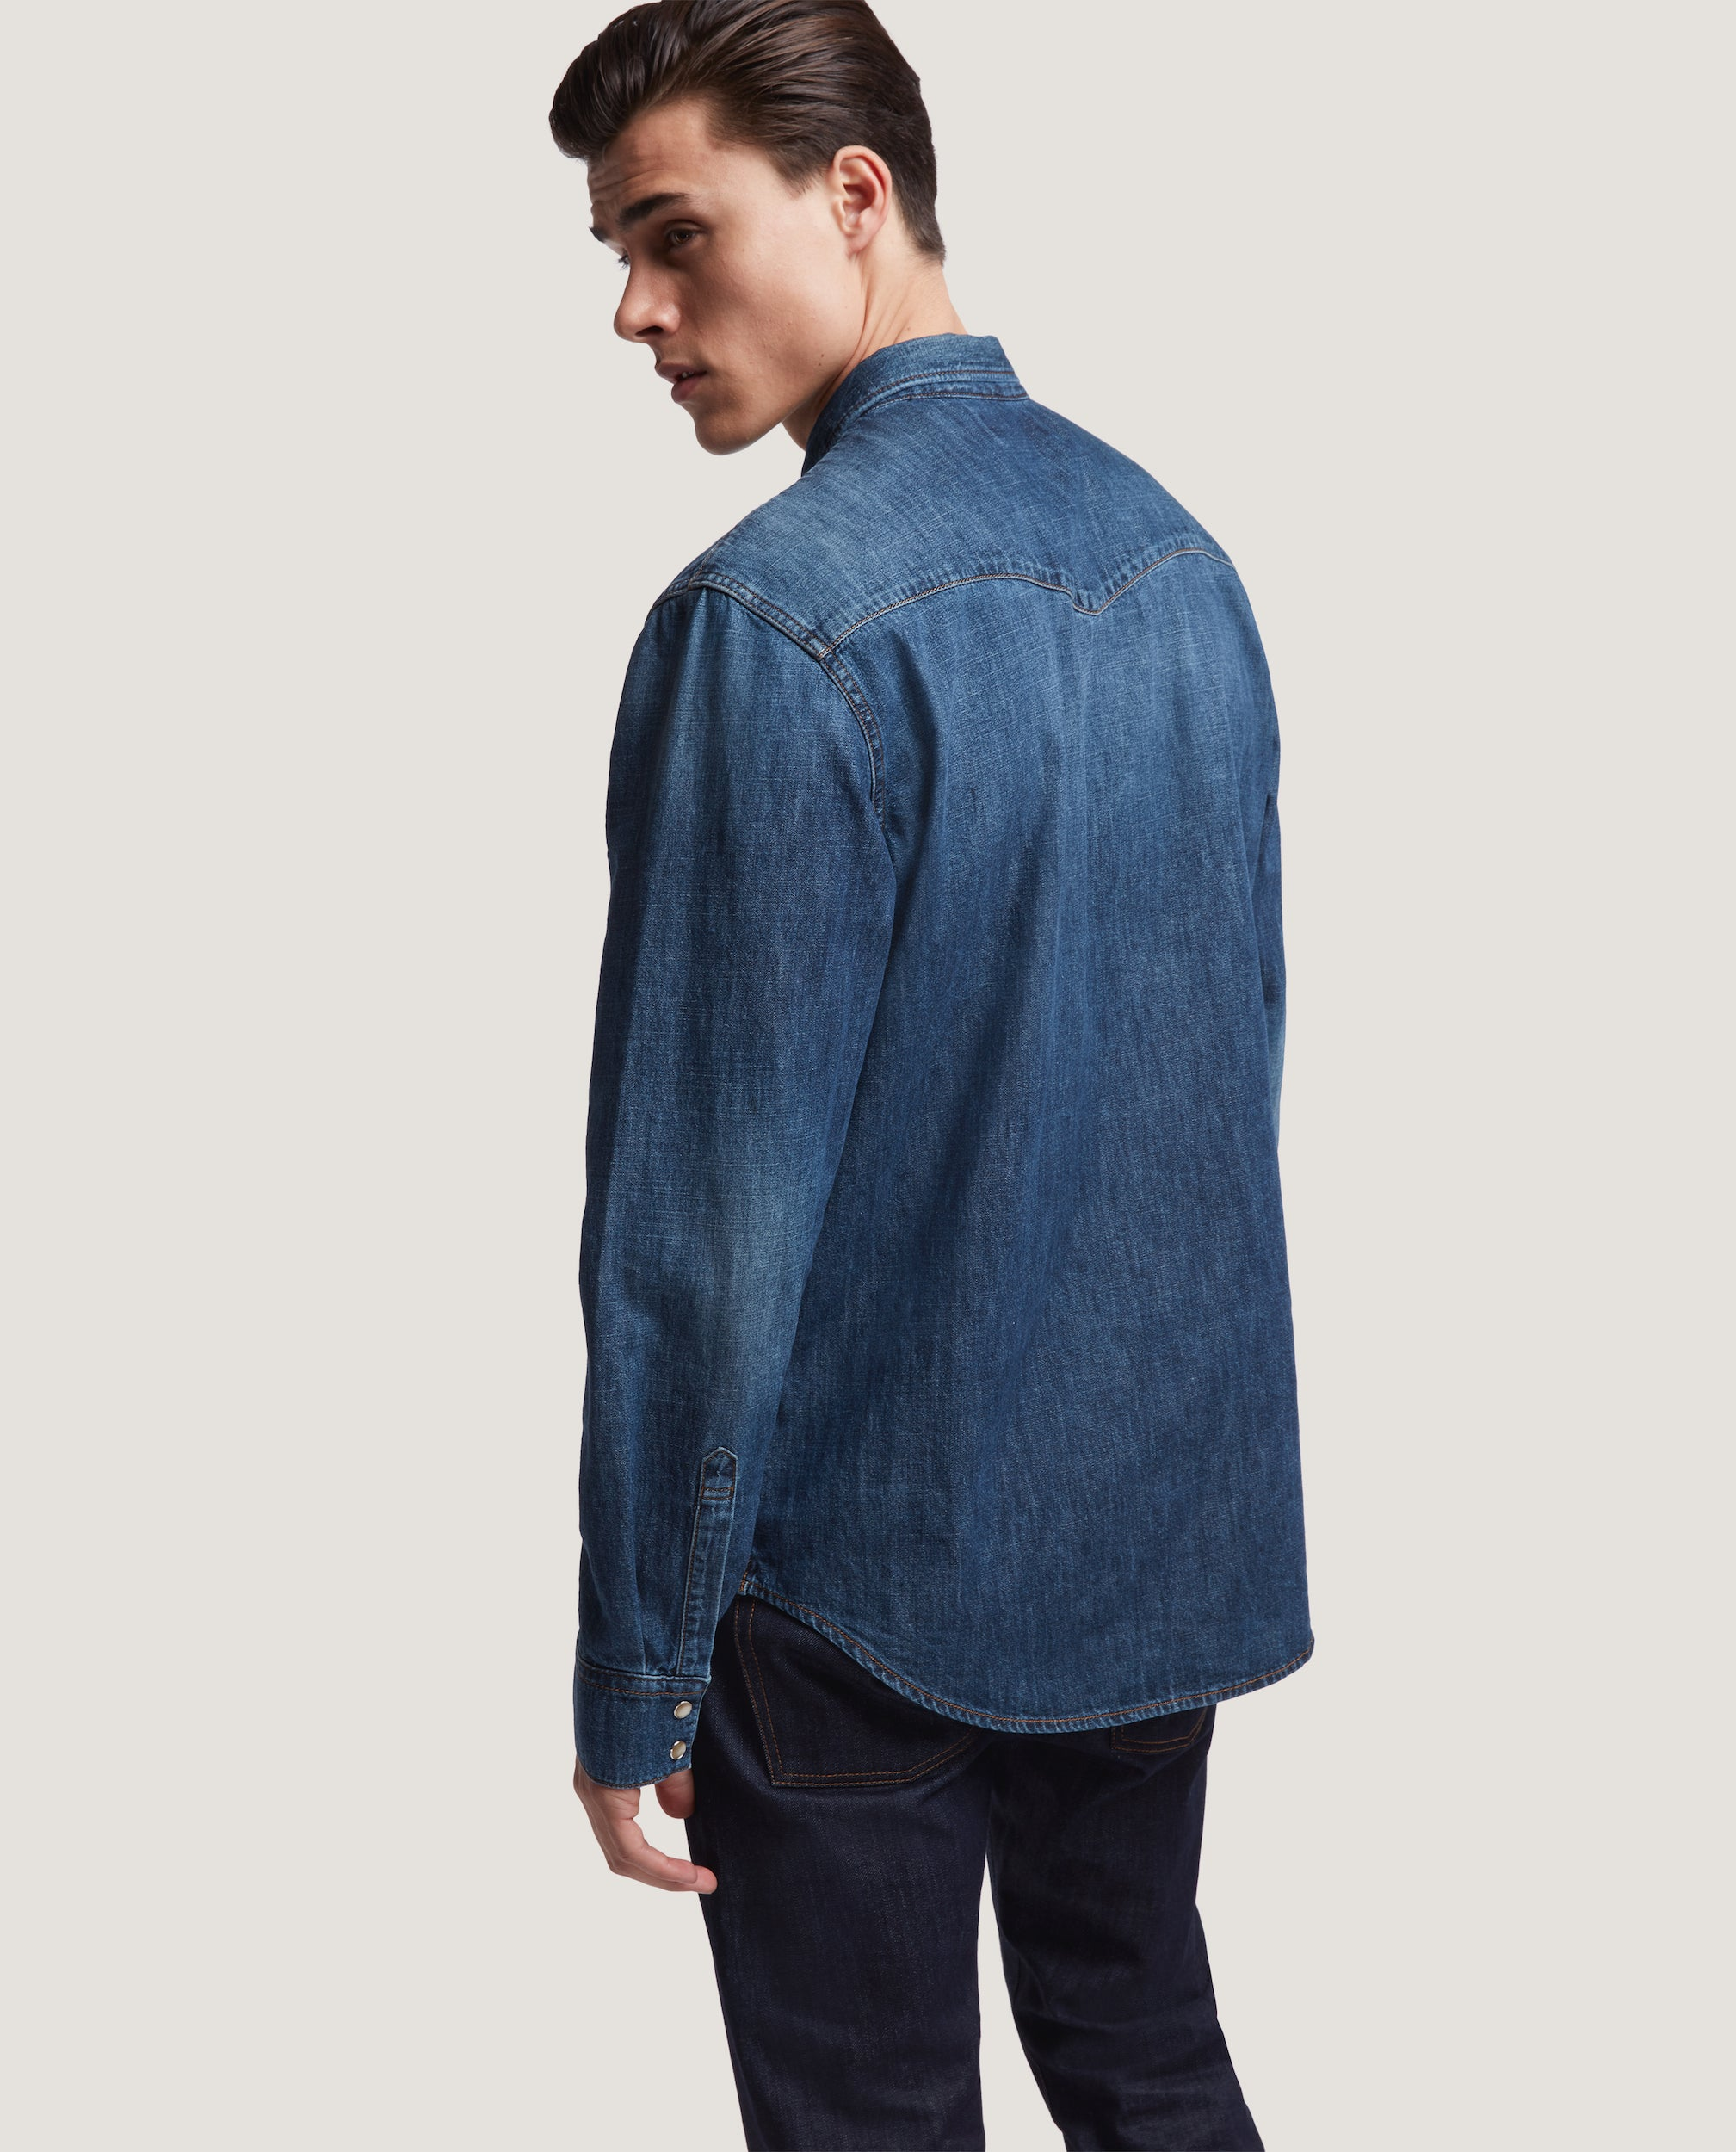 ROHE Western denim shirt | Washed